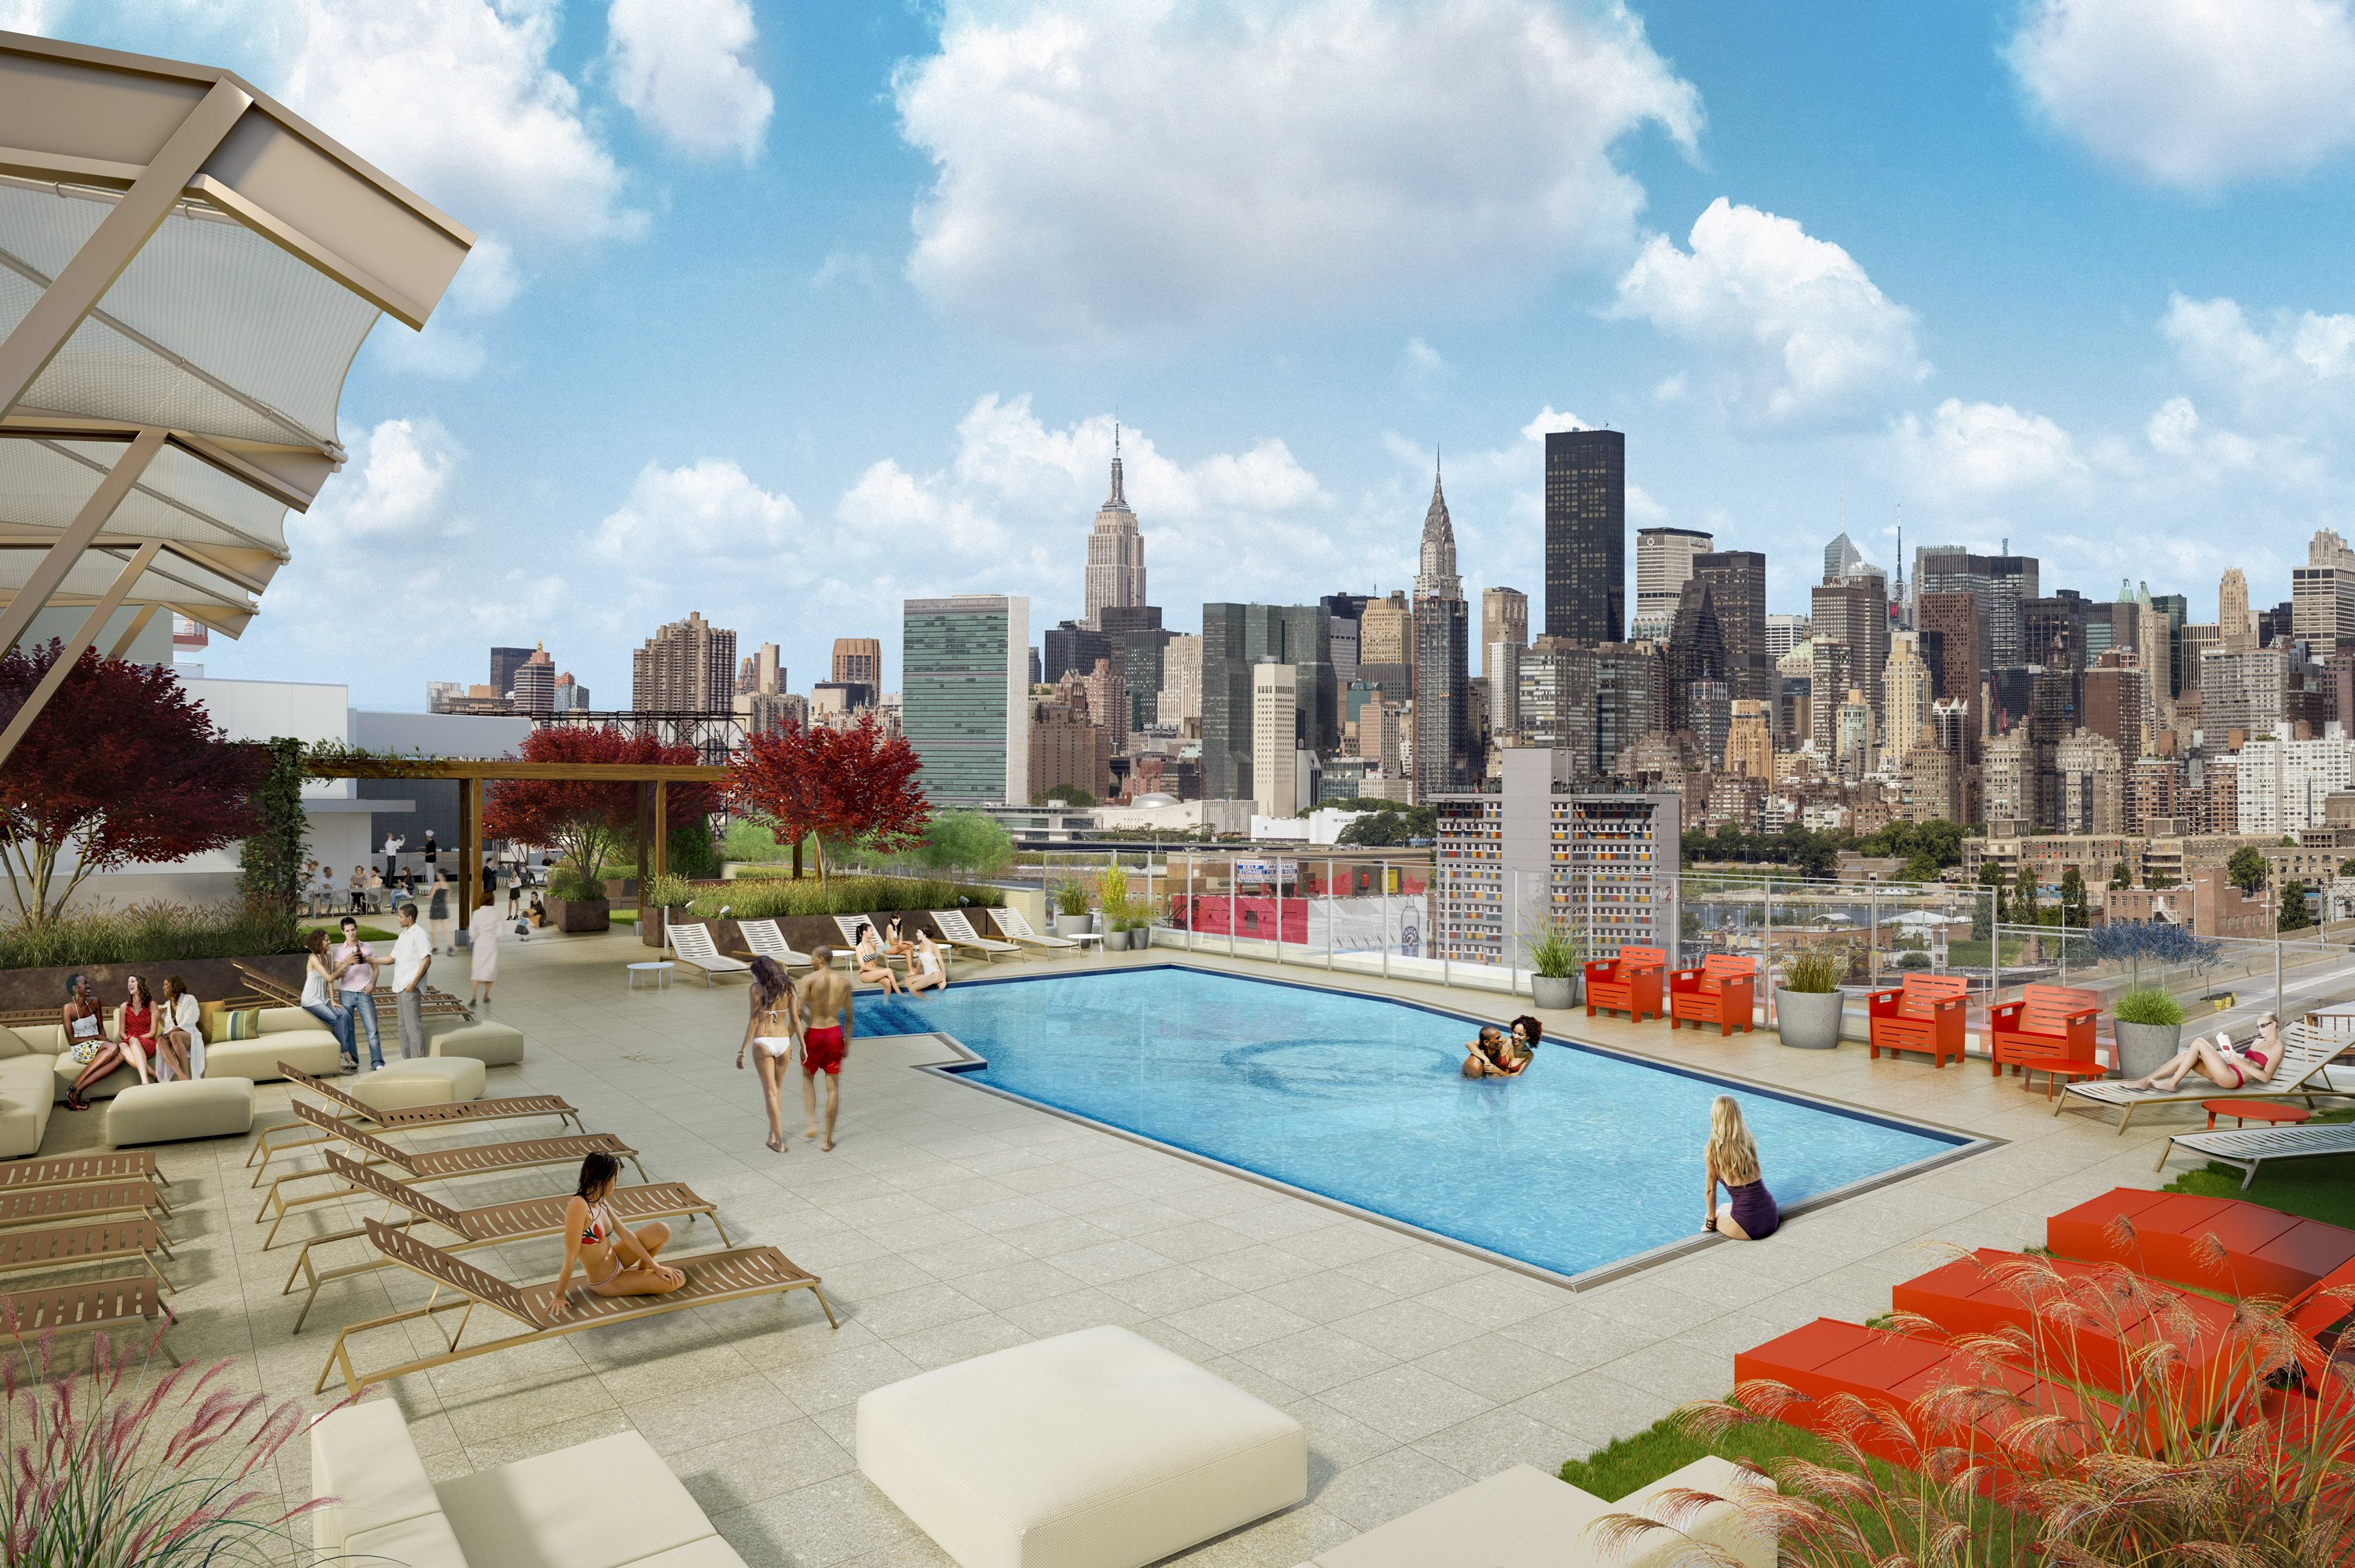 Apartments now available in new LIC luxury tower with rooftop pool  QNScom